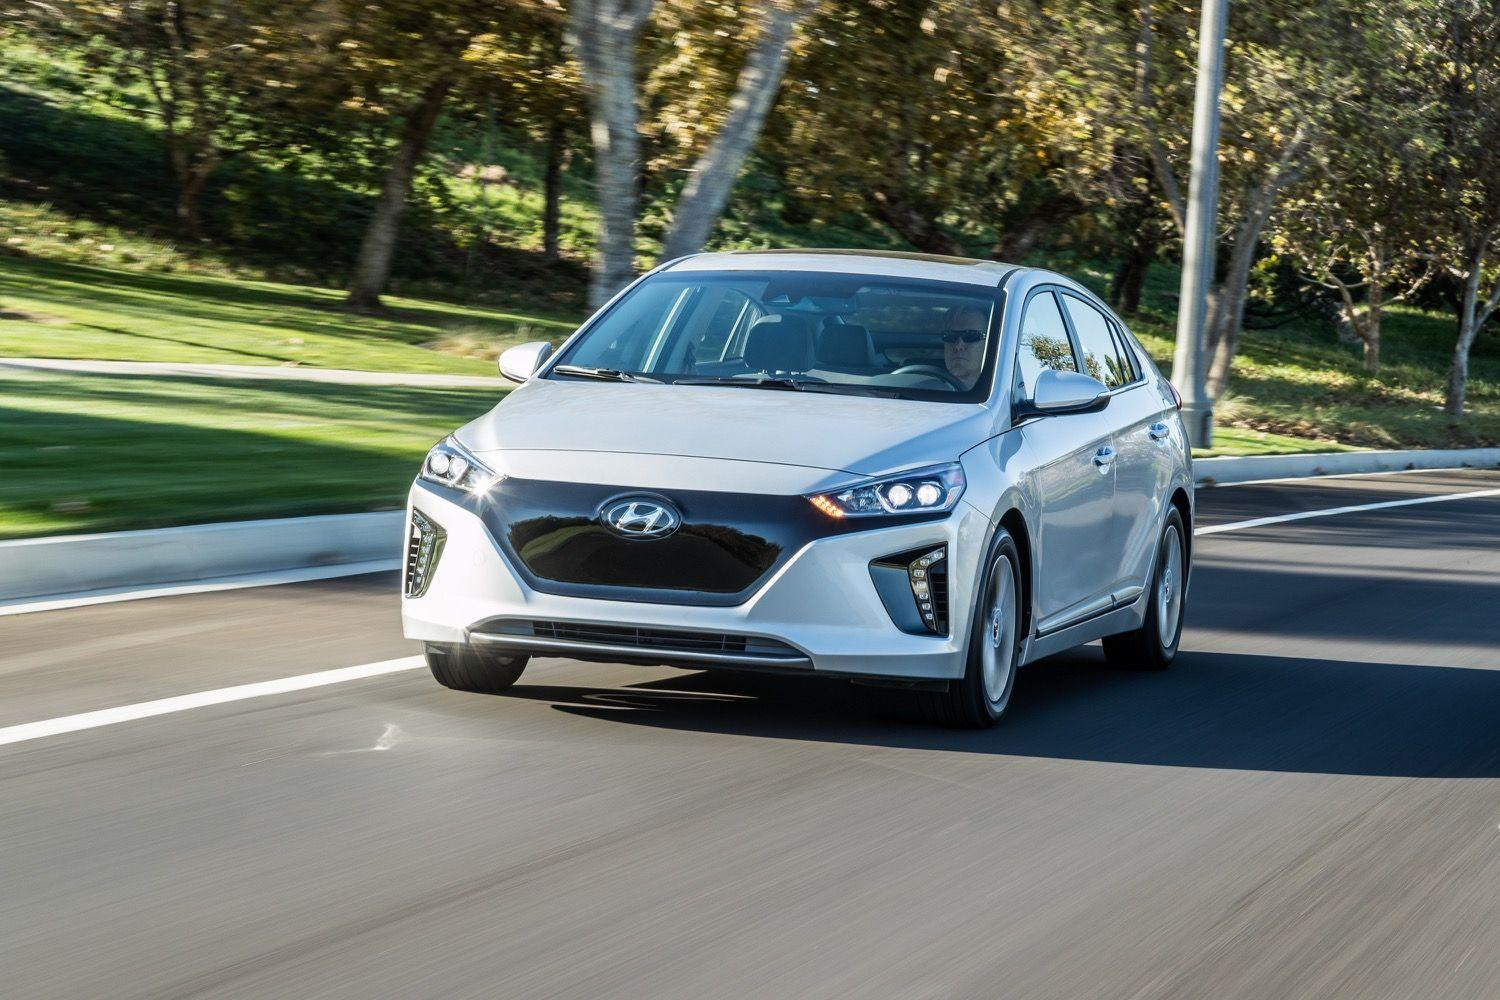 2017 Hyundai Ioniq Electric has 124